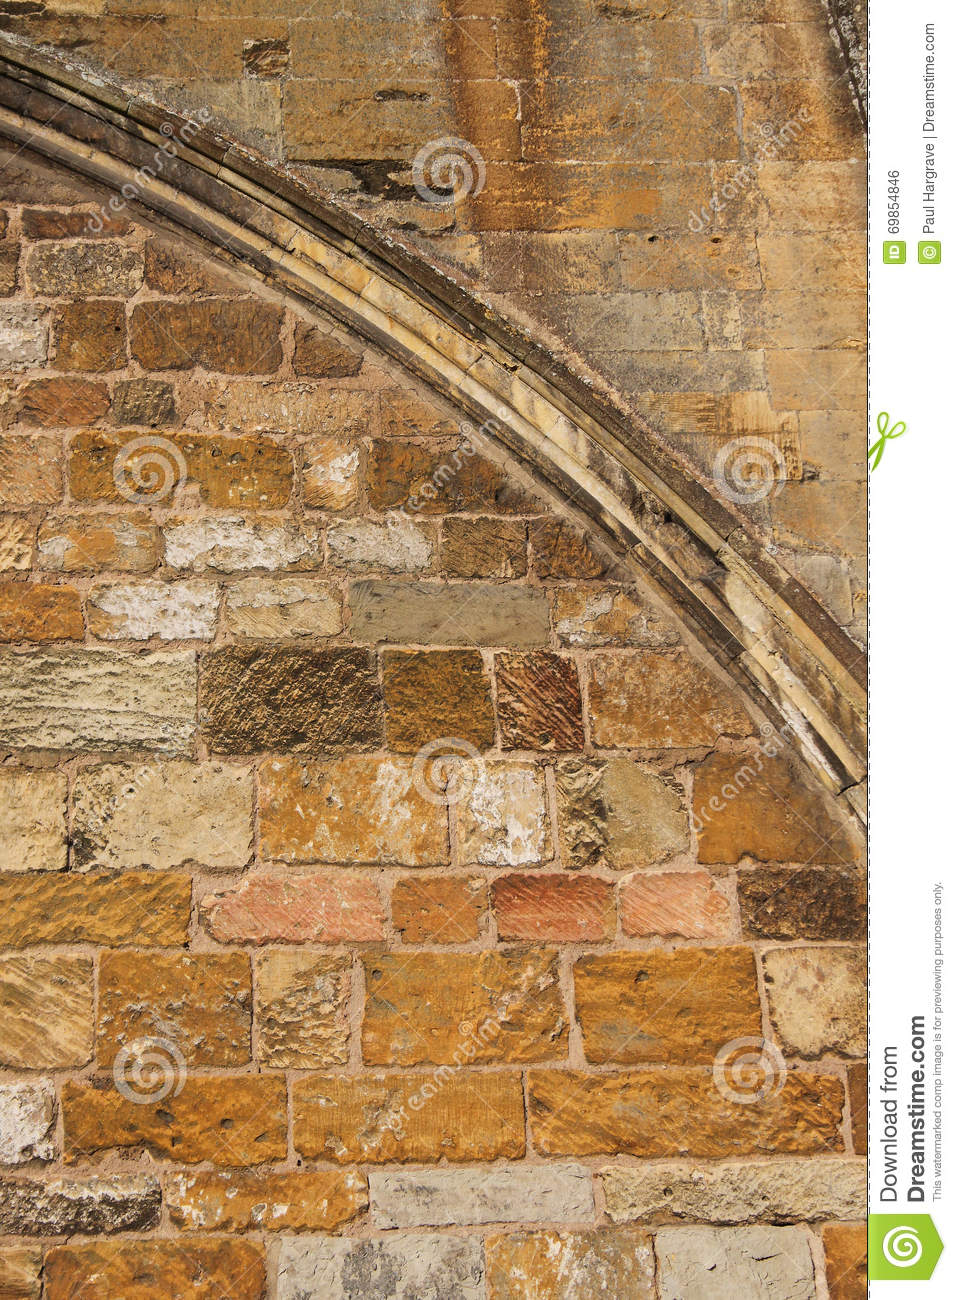 Abbaye de Tewkesbury, Angleterre, détail architectural